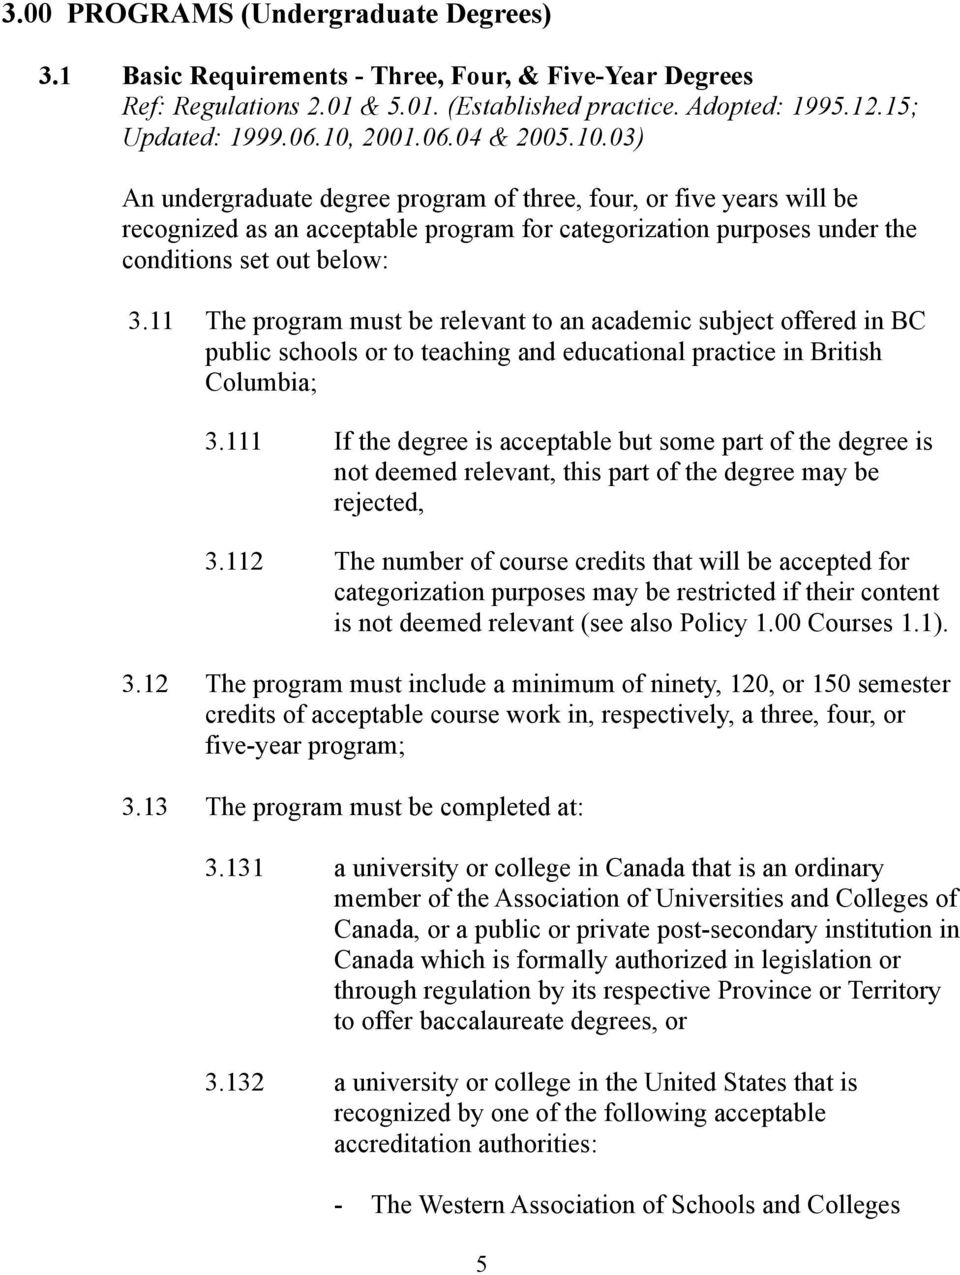 11 The program must be relevant to an academic subject offered in BC public schools or to teaching and educational practice in British Columbia; 3.